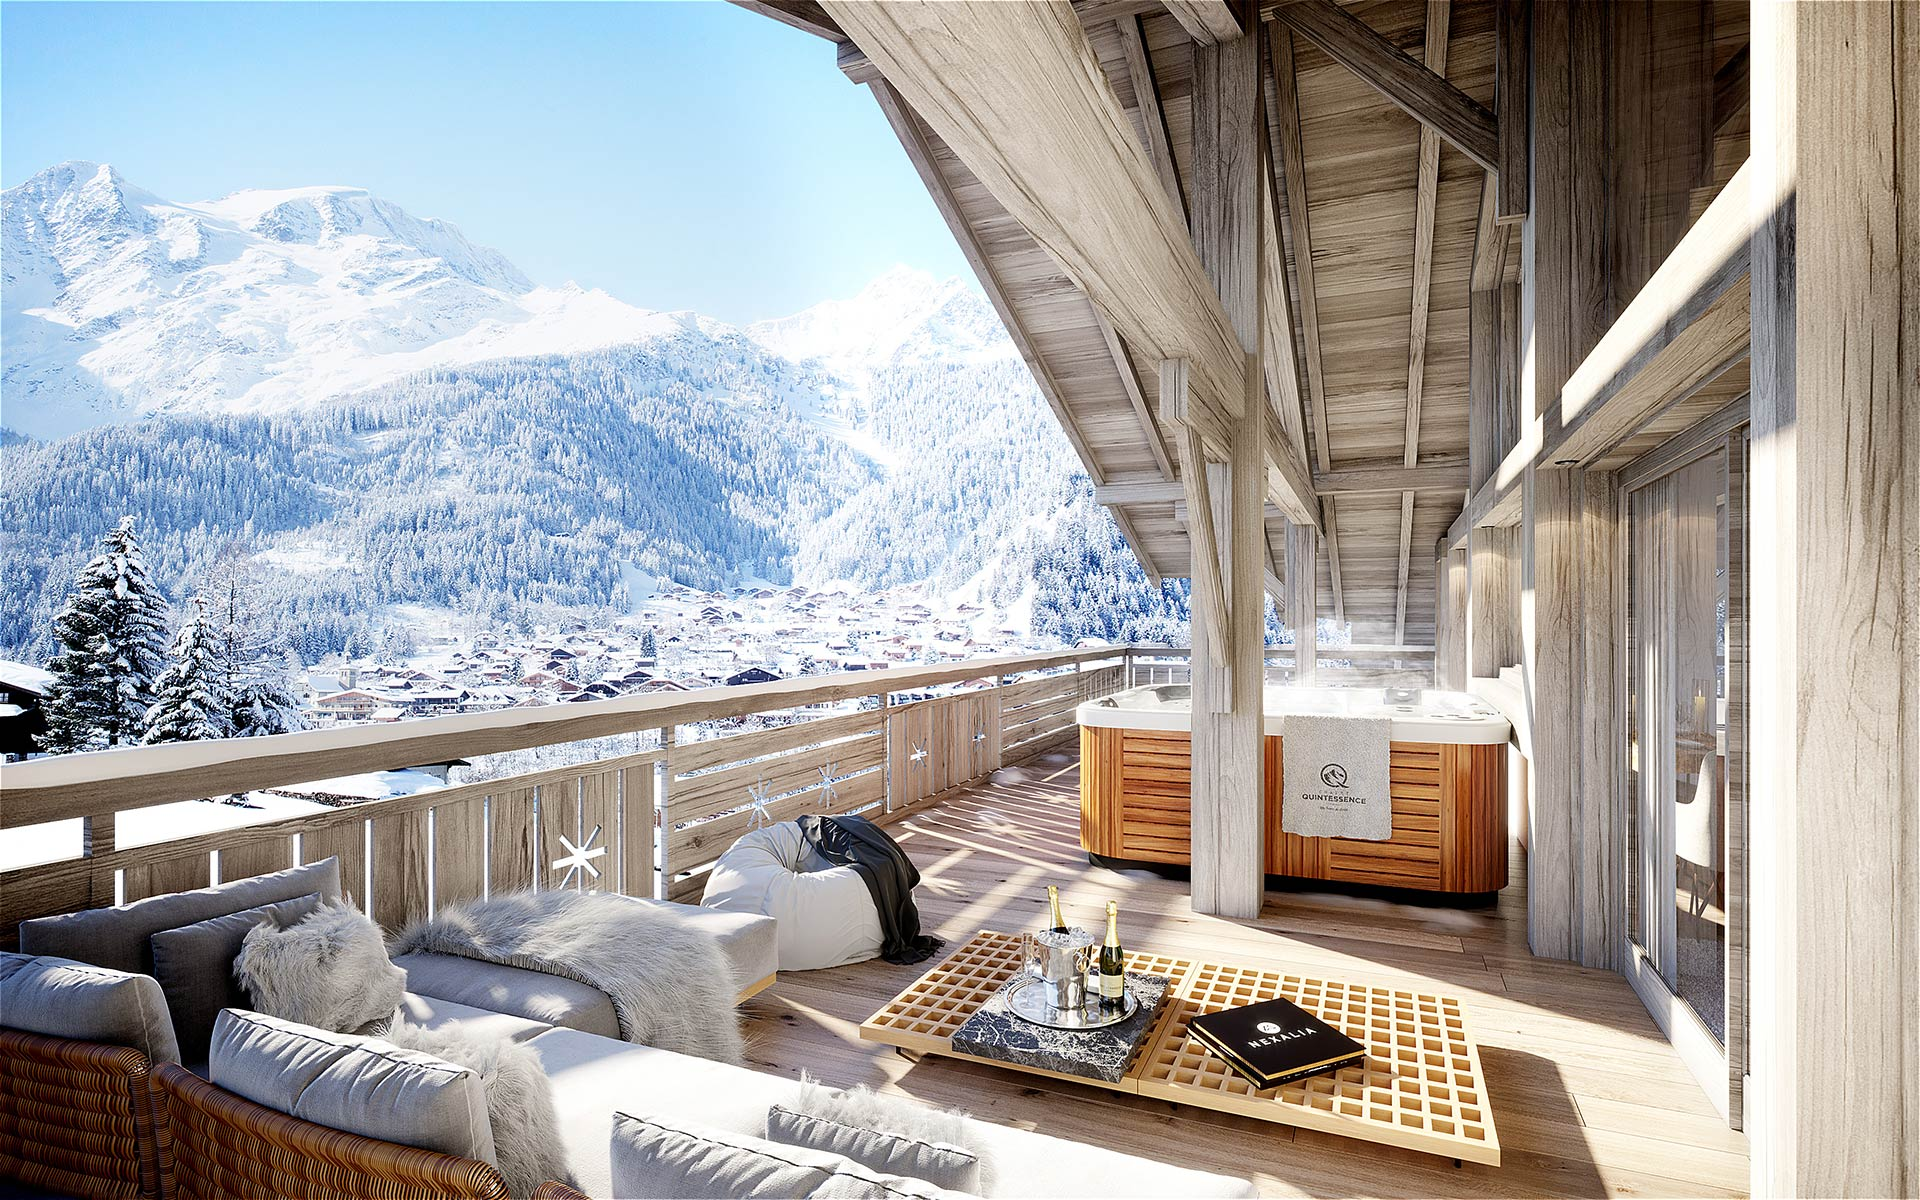 3D Render of the terrace of a luxurious alpine chalet